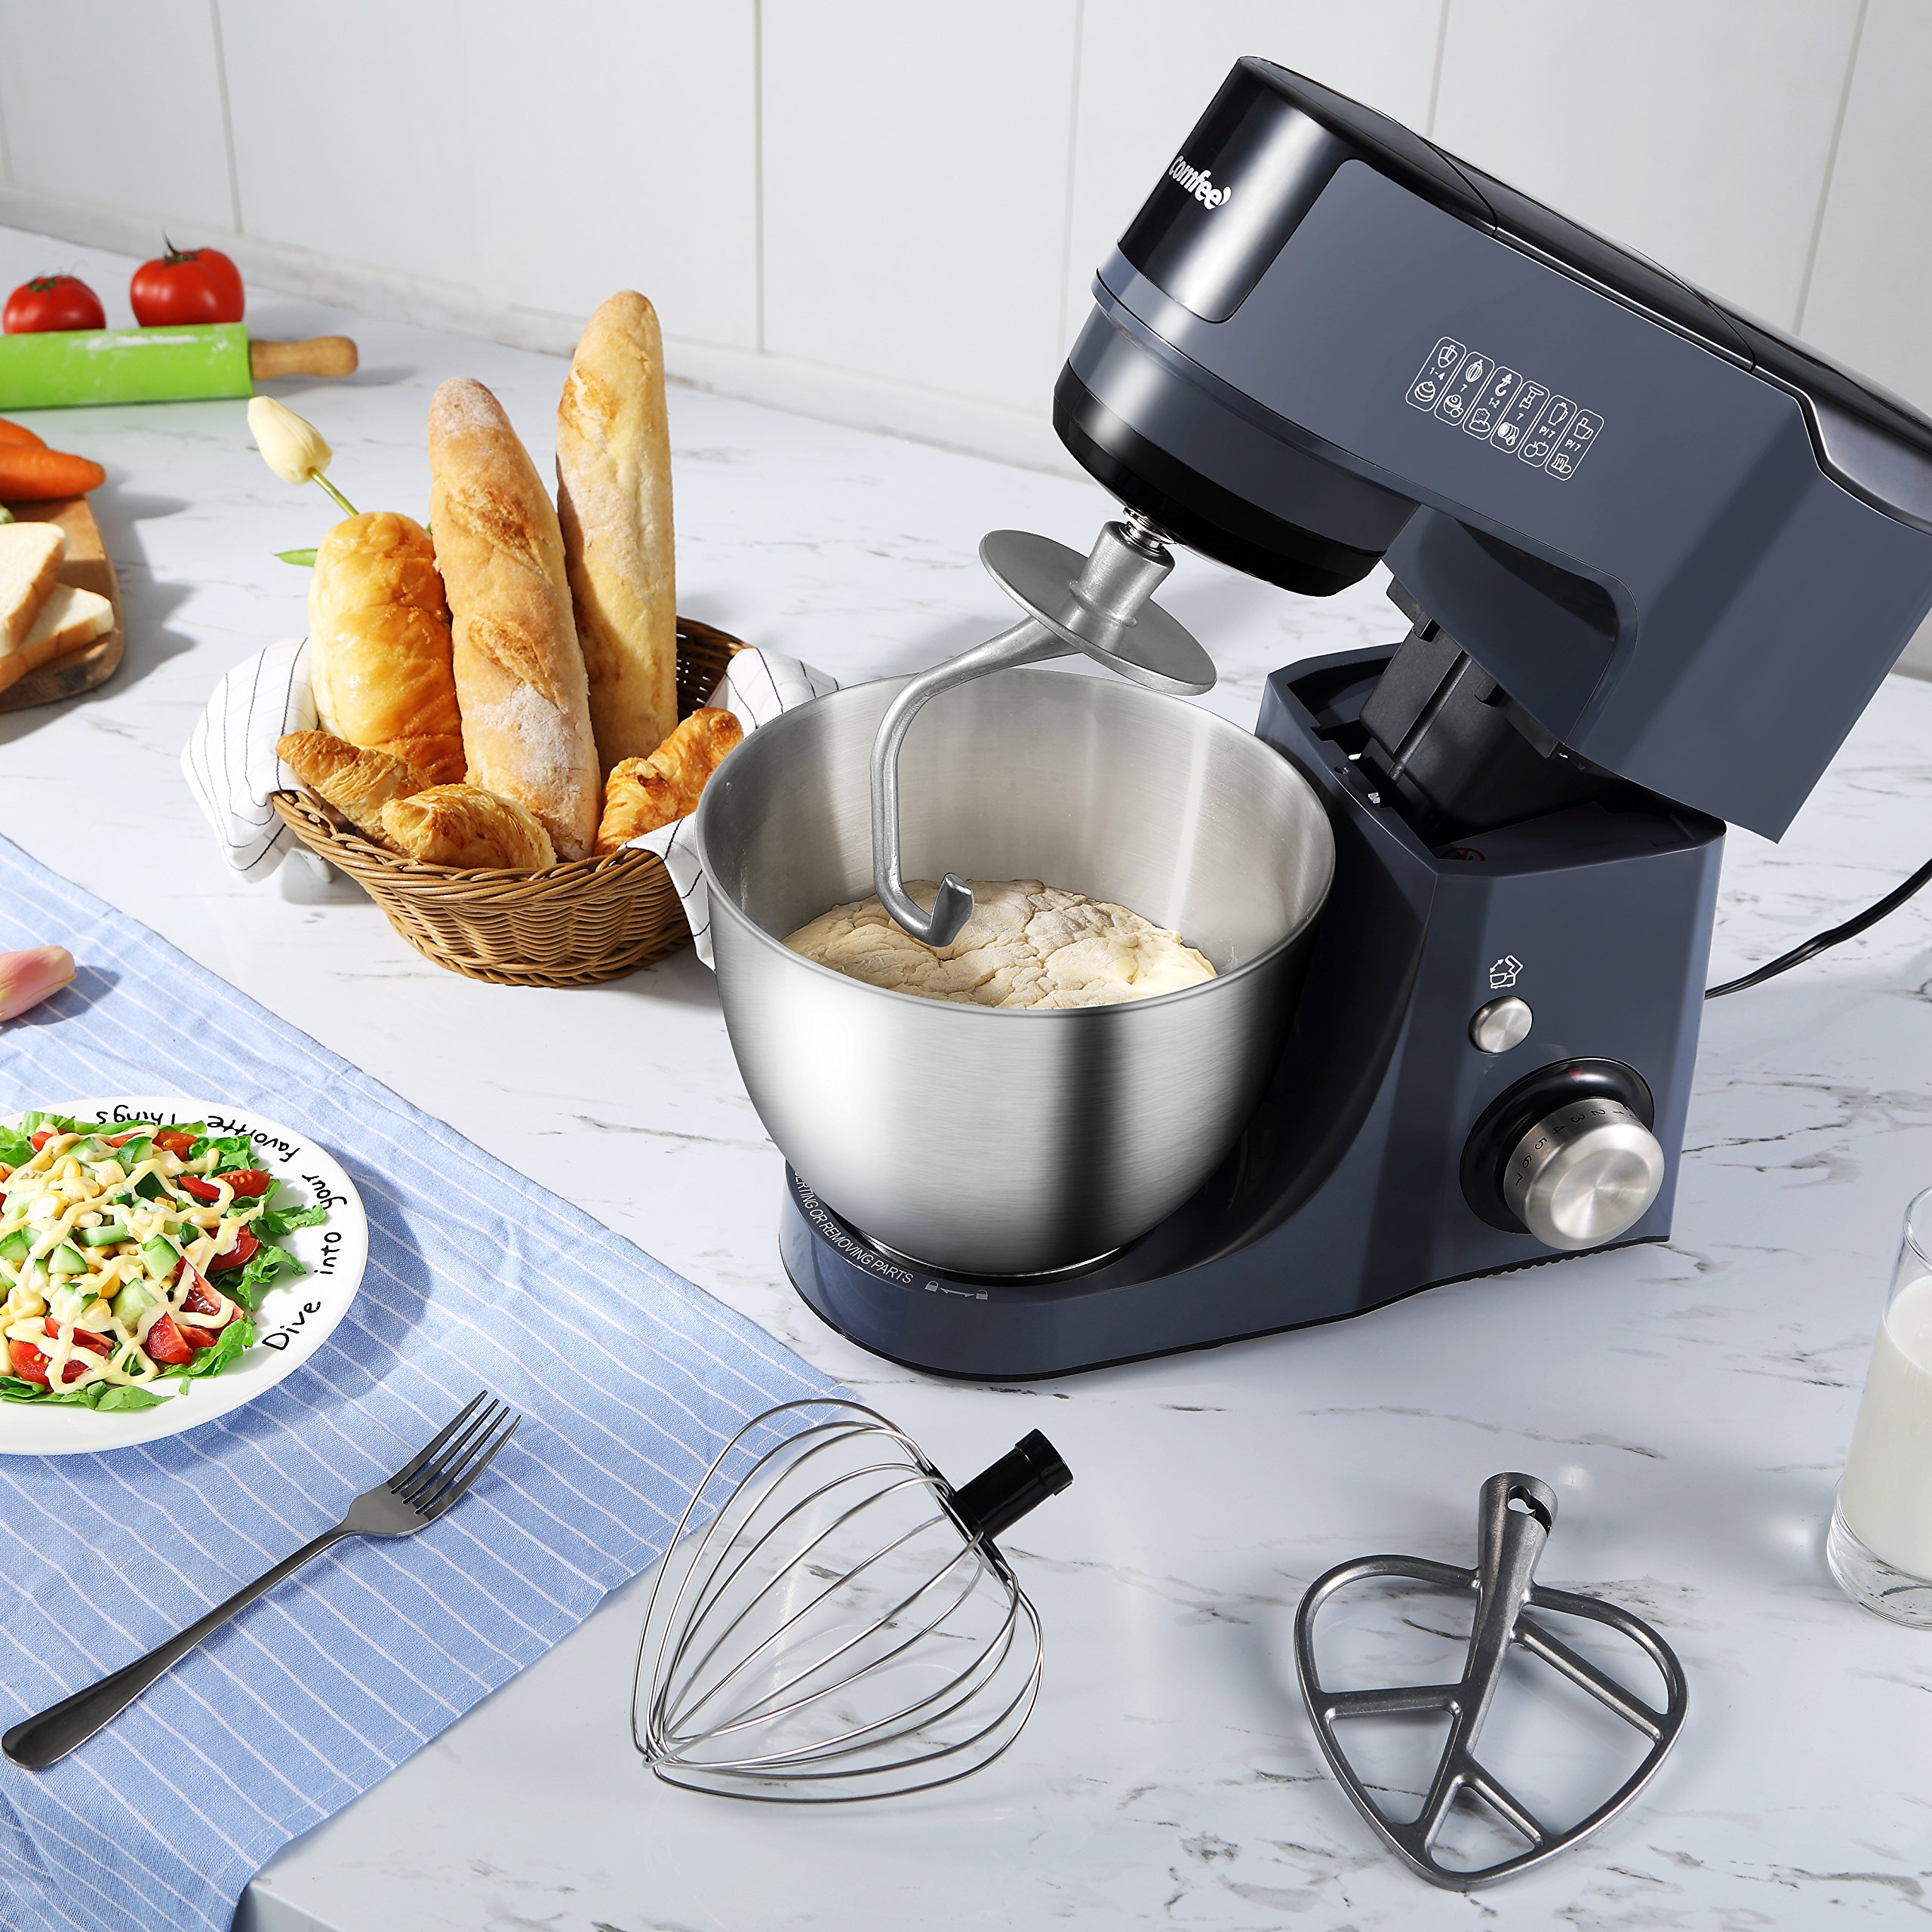 Comfee 4.75Qt 7-in-1 Multi Functions Tilt-Head ABS housing Stand Mixer with SUS Mixing Bowl. 4 Outlets with 7 Speeds & Pulse Control and 15 Minutes Timer Planetary Mixer ¡ by COMFEE' (Image #8)